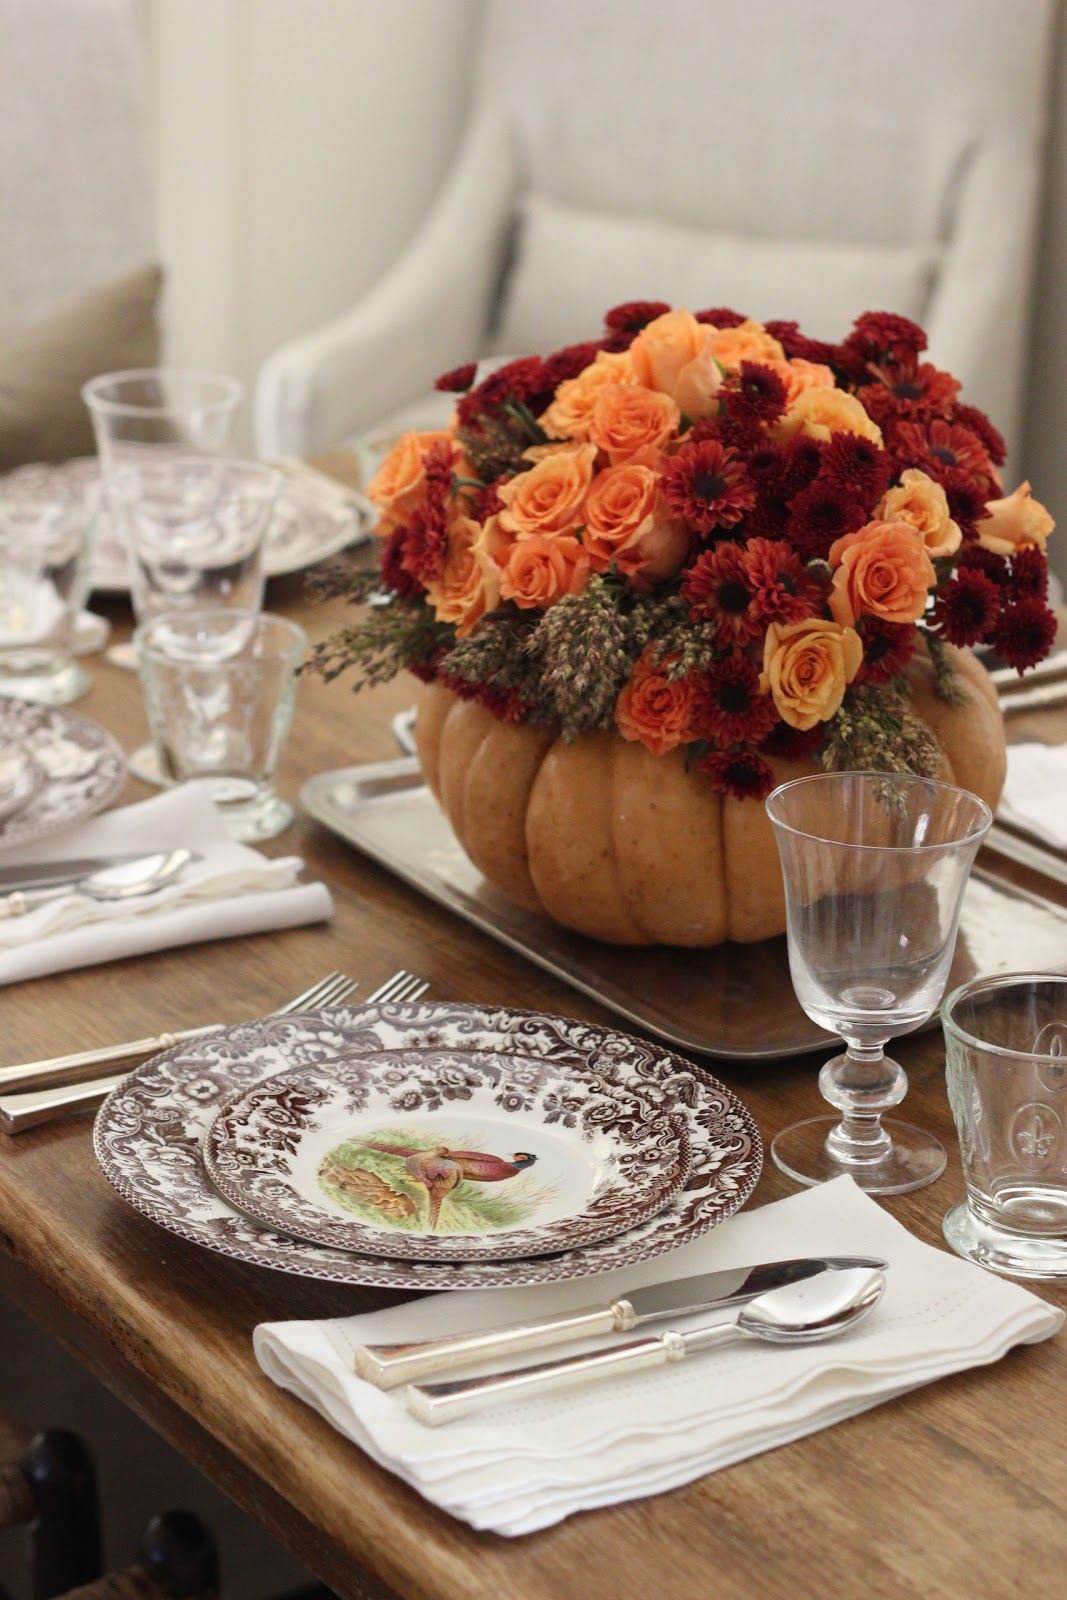 Thanksgiving Table Setting | DIY Flower Pumpkin Centerpiece Woodland China Hemstitch Linens Pewter Flatware \u0026 Rustic Glassware & Jenny Steffens Hobick: Thanksgiving Table Setting | DIY Flower ...